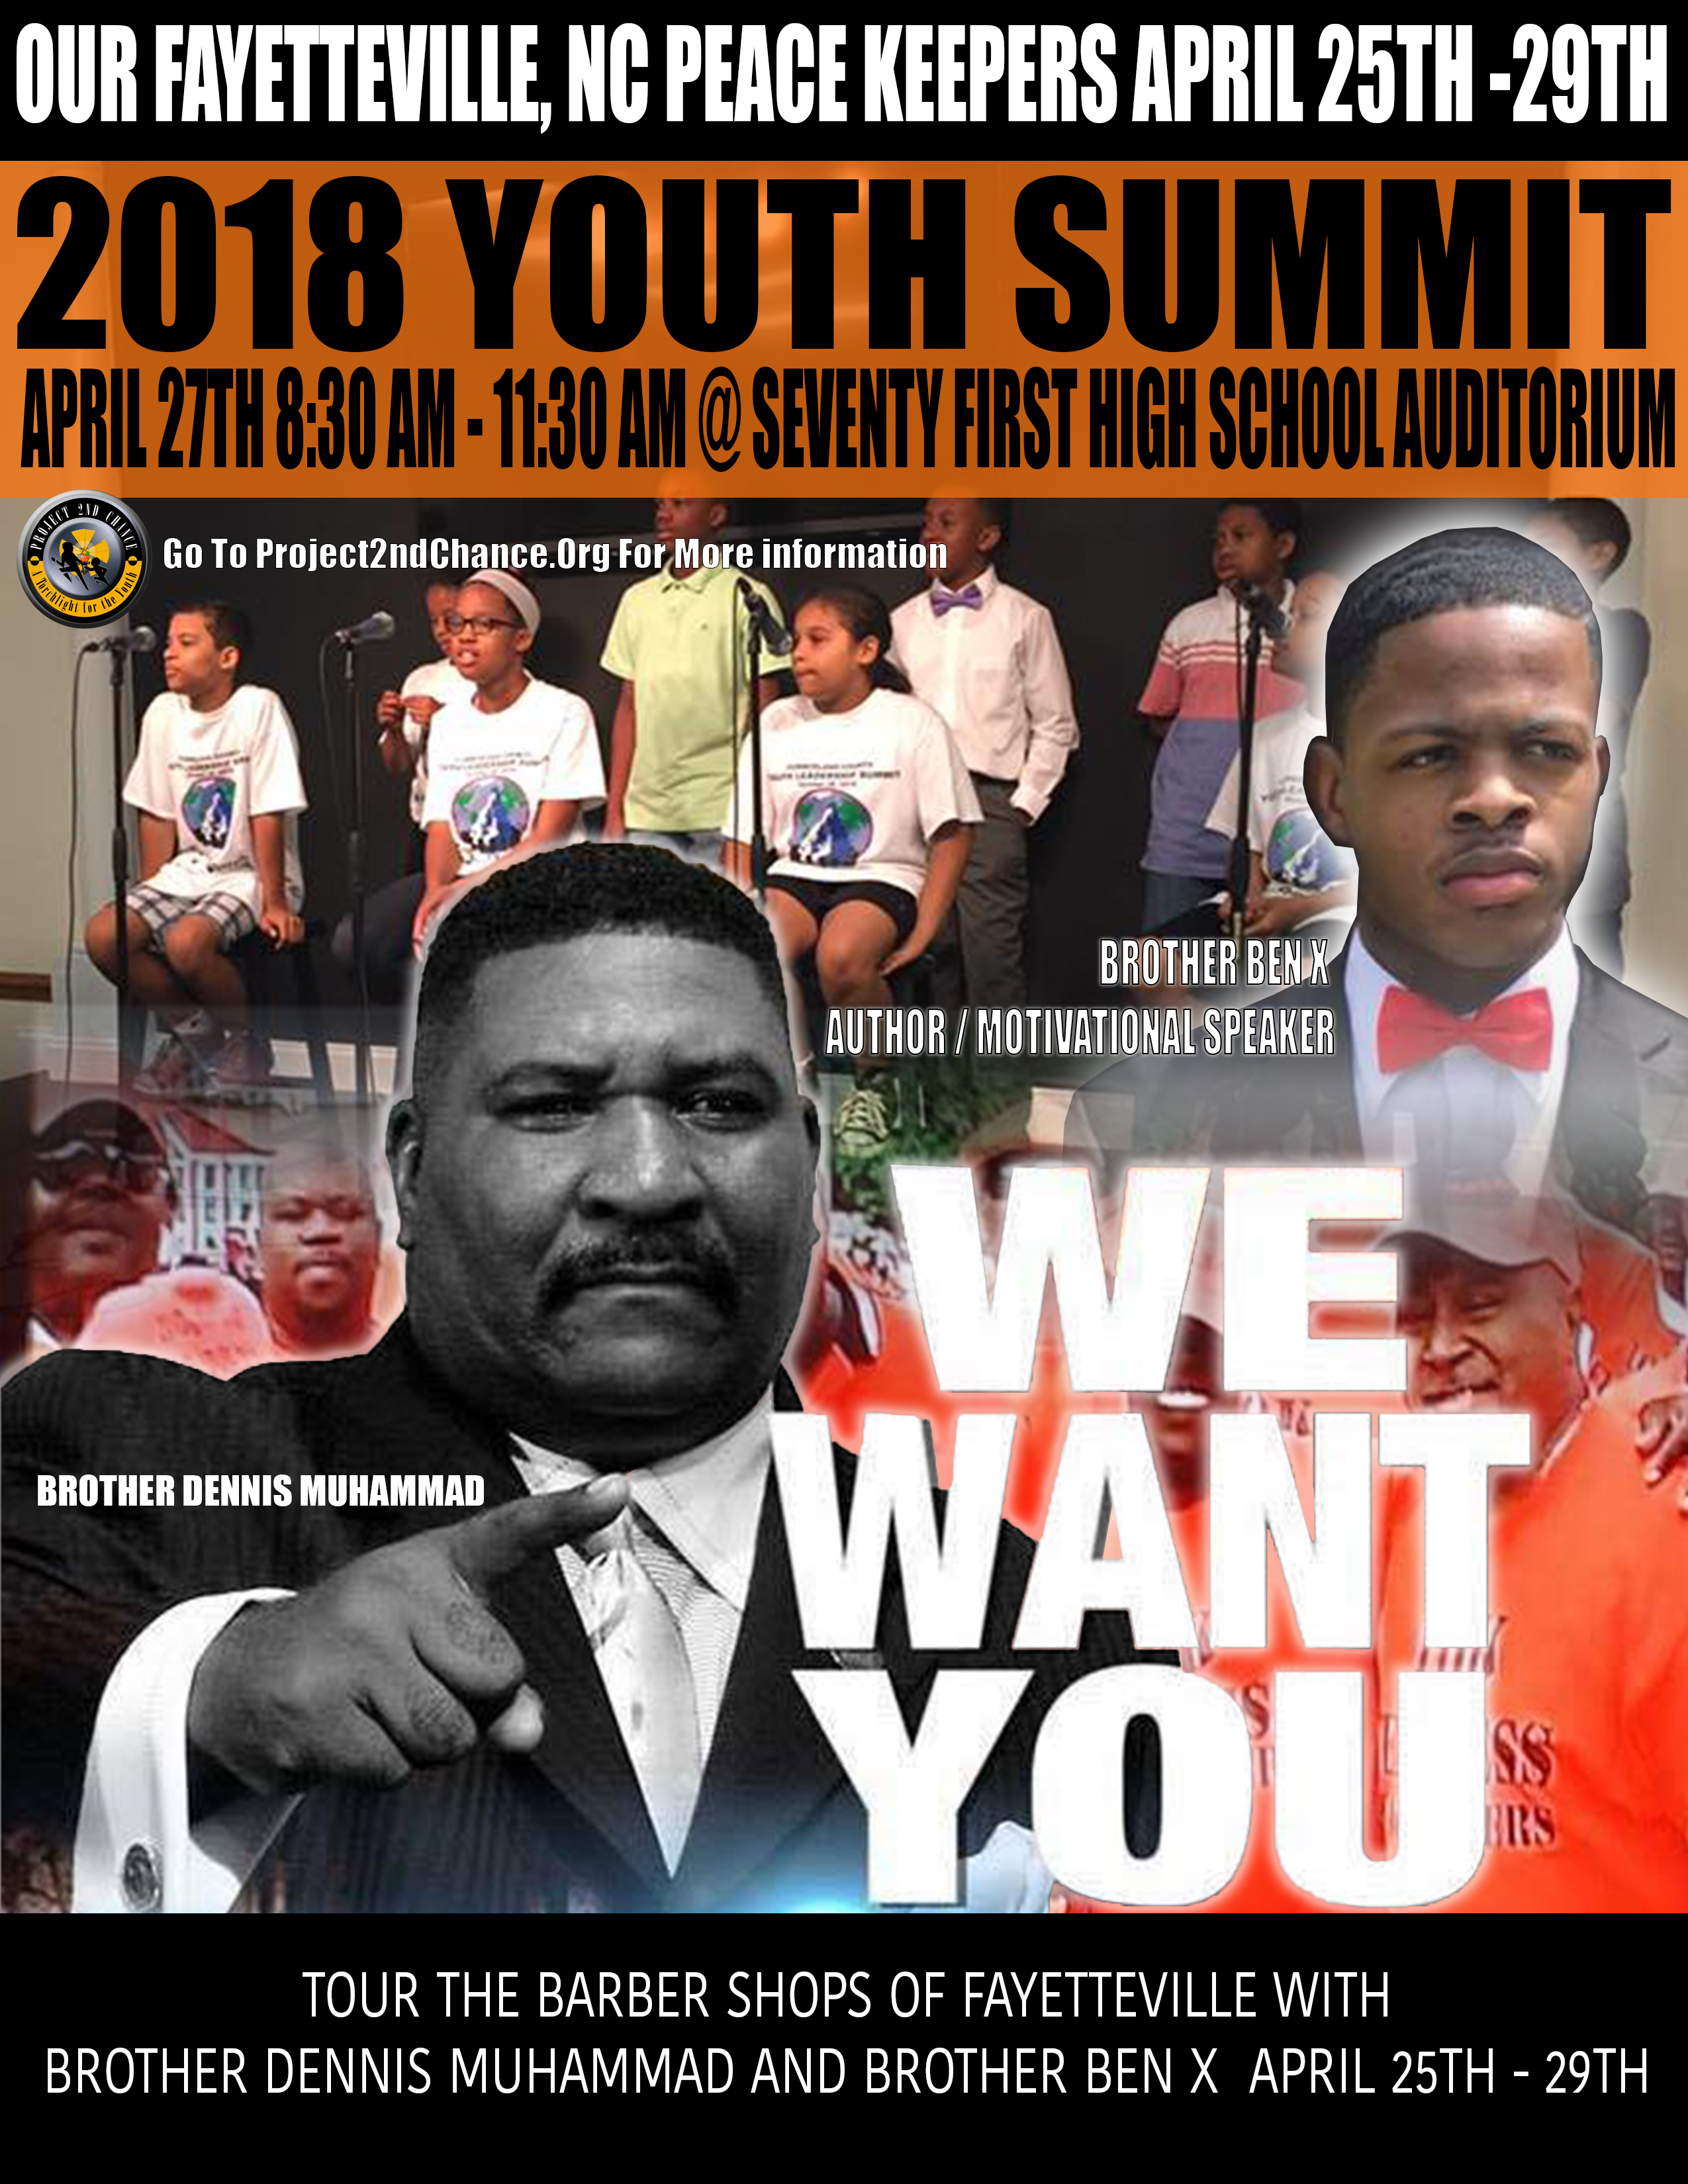 YOUTHSUMMIT 2018 FLYER